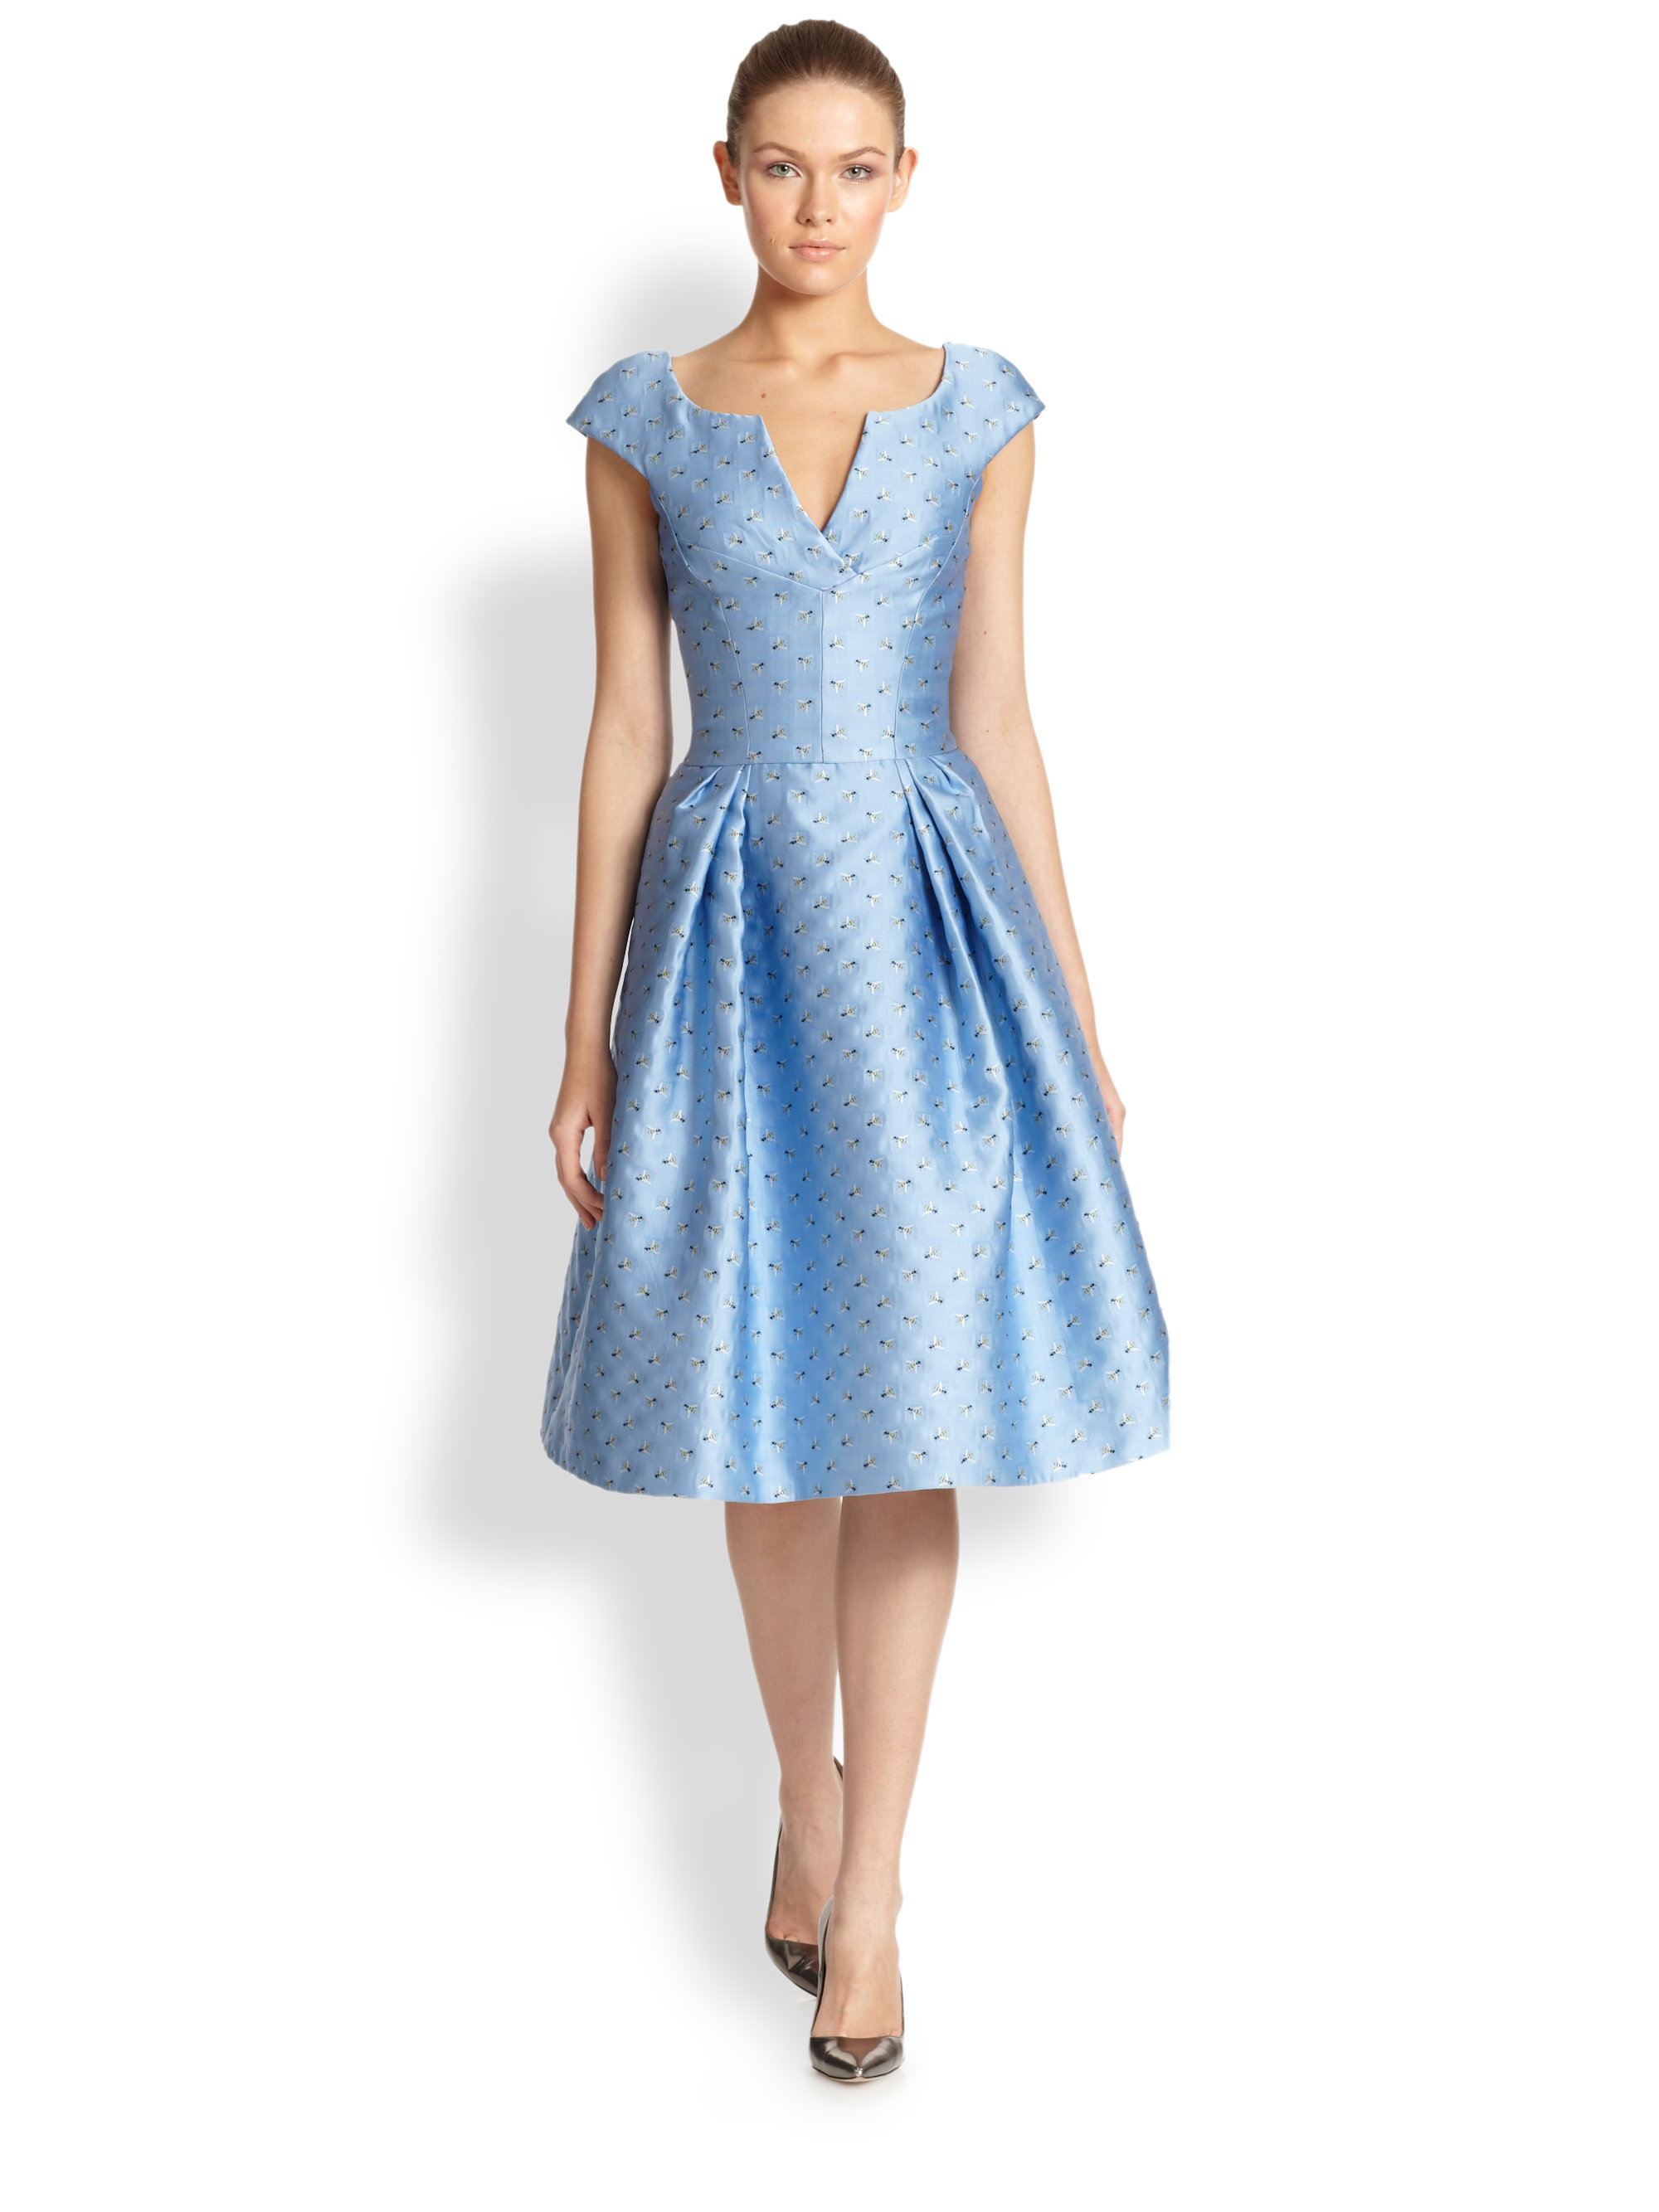 Lyst - Carolina Herrera Bee Jacquard Cocktail Dress in Blue